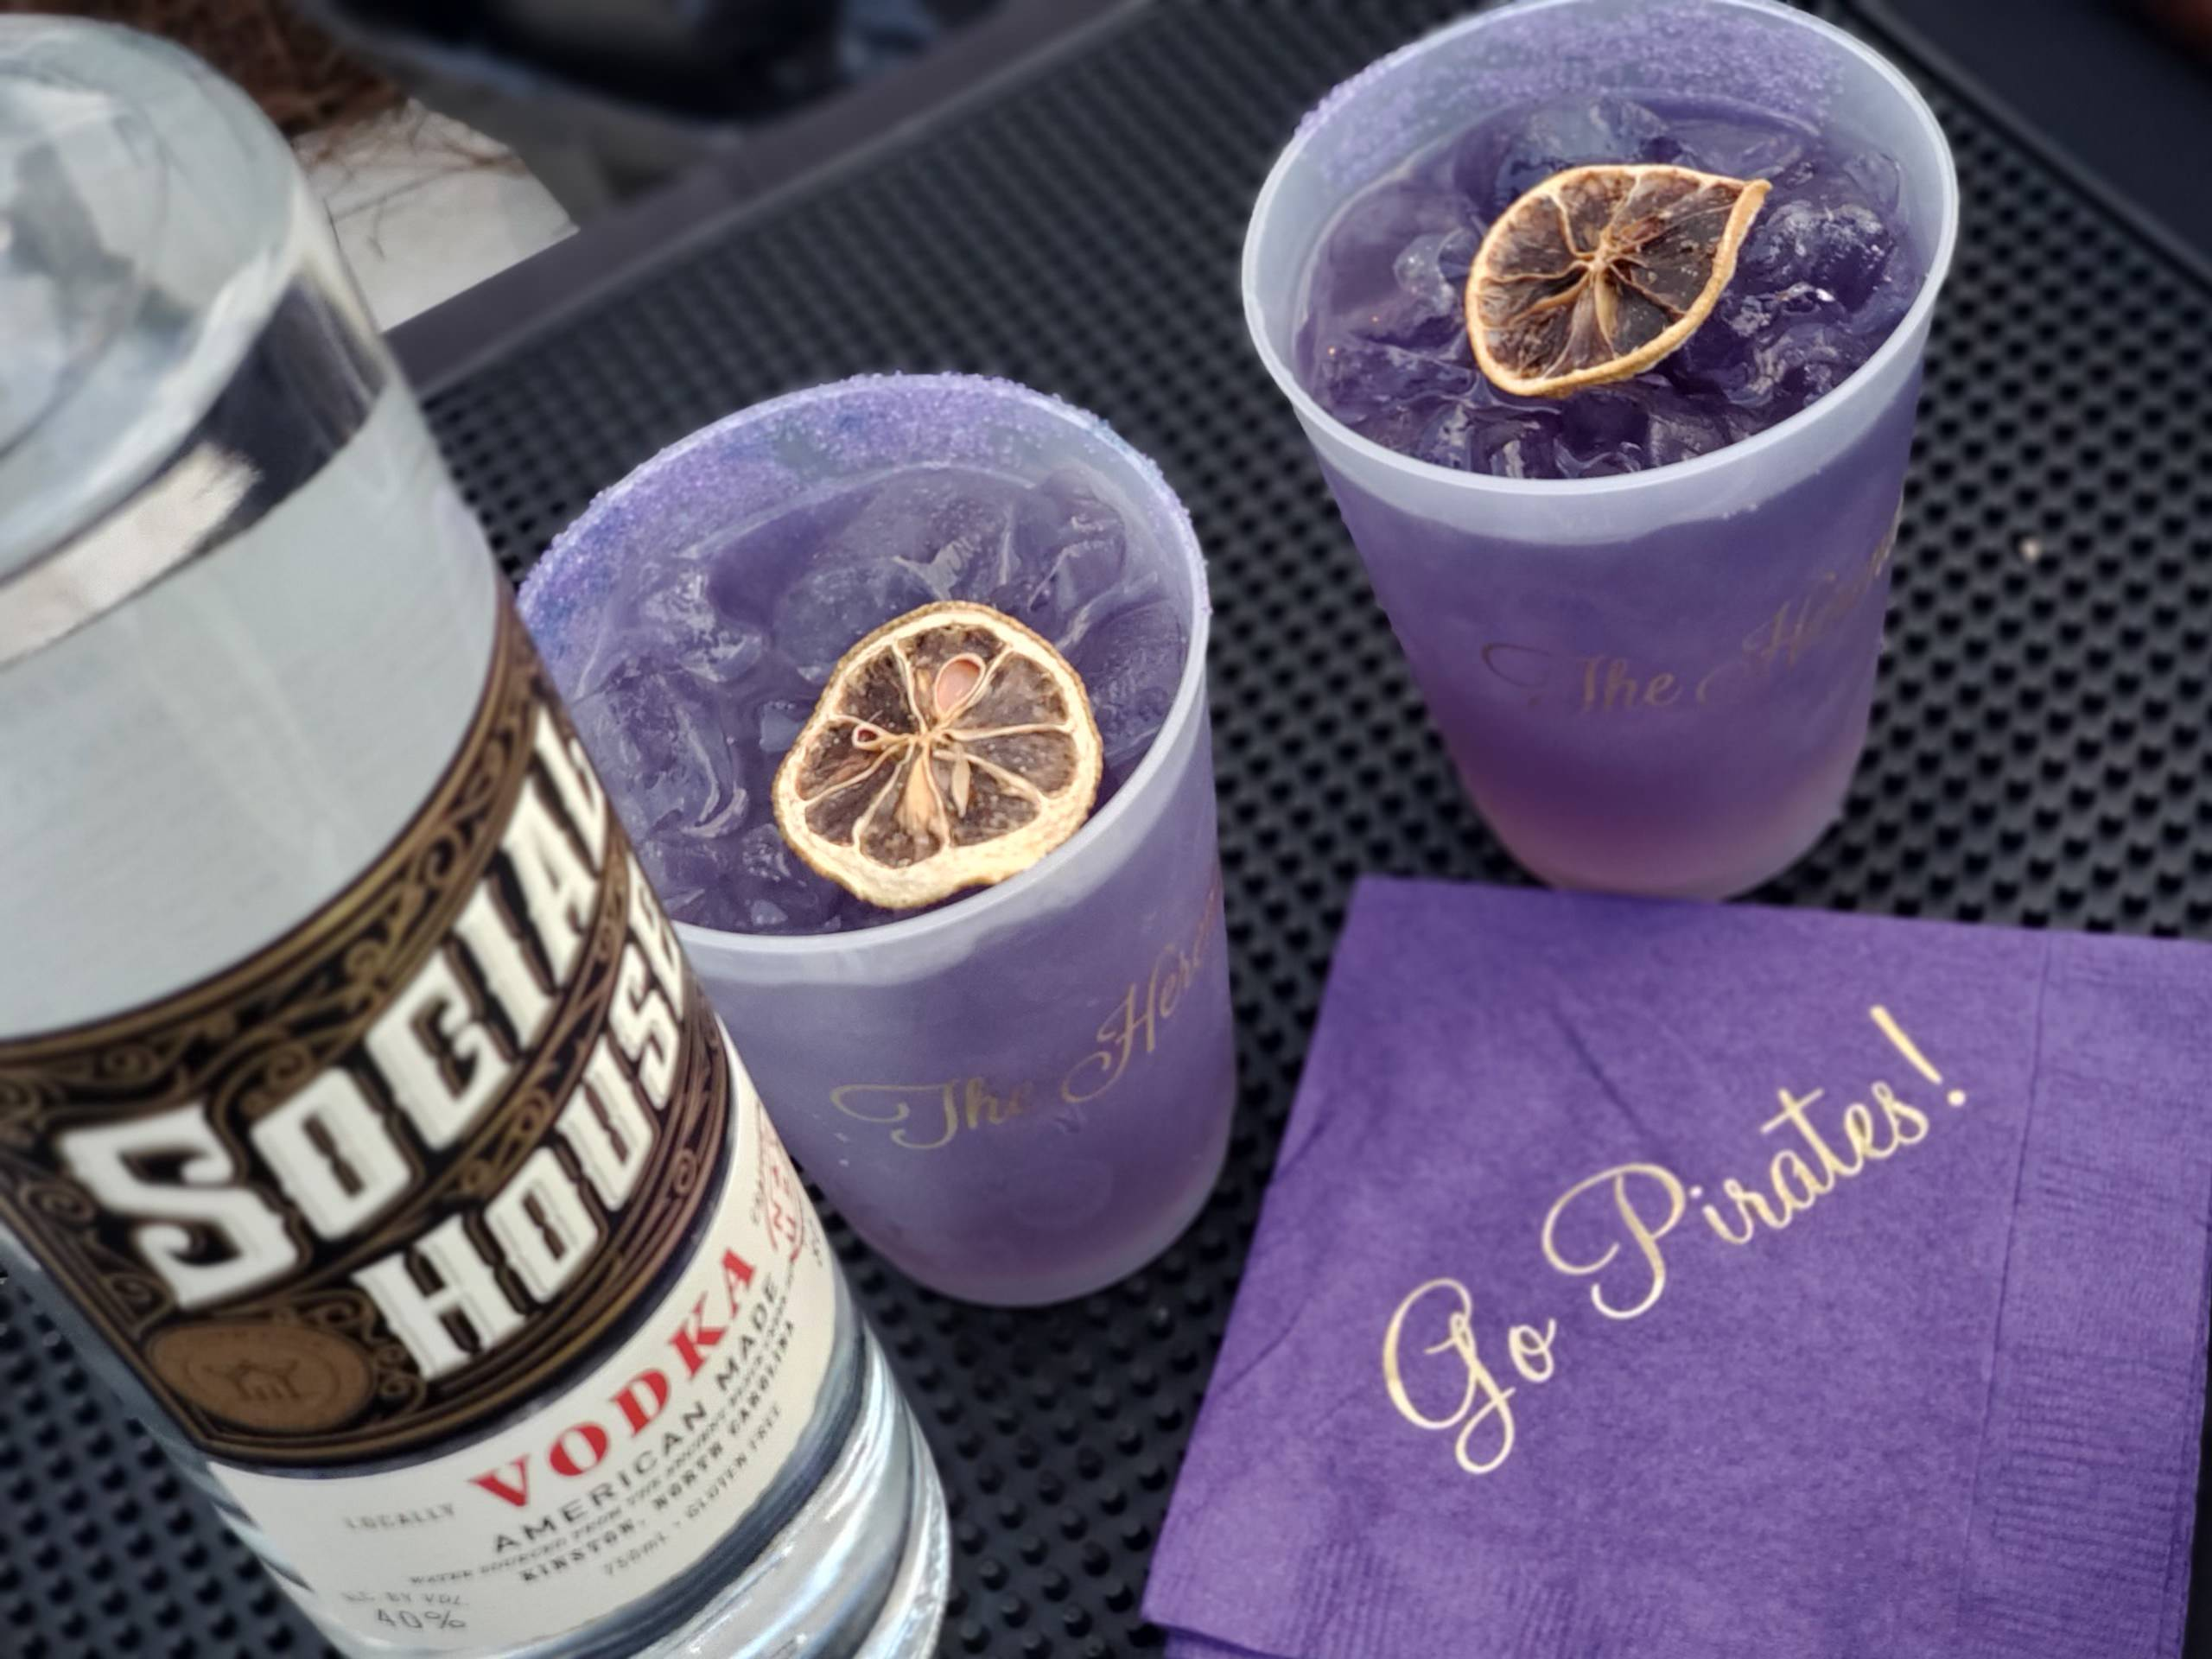 SOCIAL HOUSE® Vodka Private Events